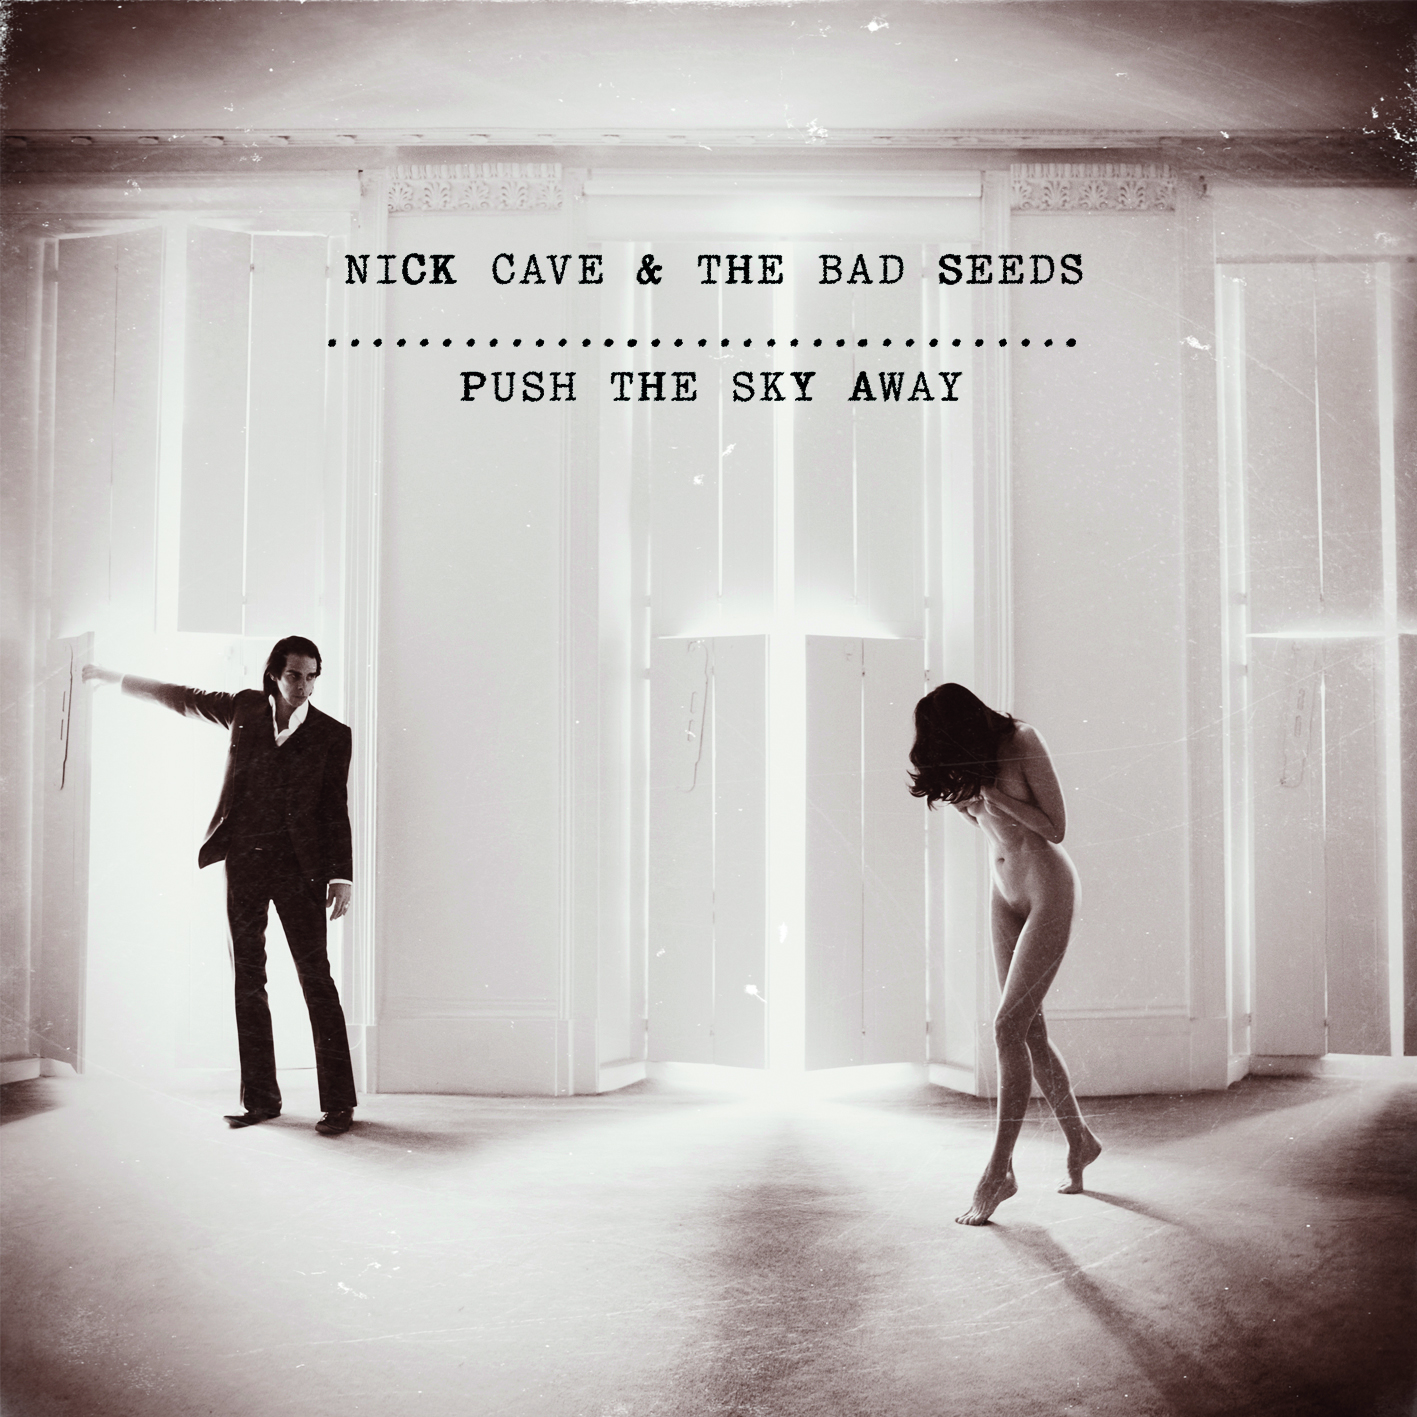 NICK CAVE AND THE BAD SEEDS   Push the Sky Away, 2013, Nick Launay, 42:40